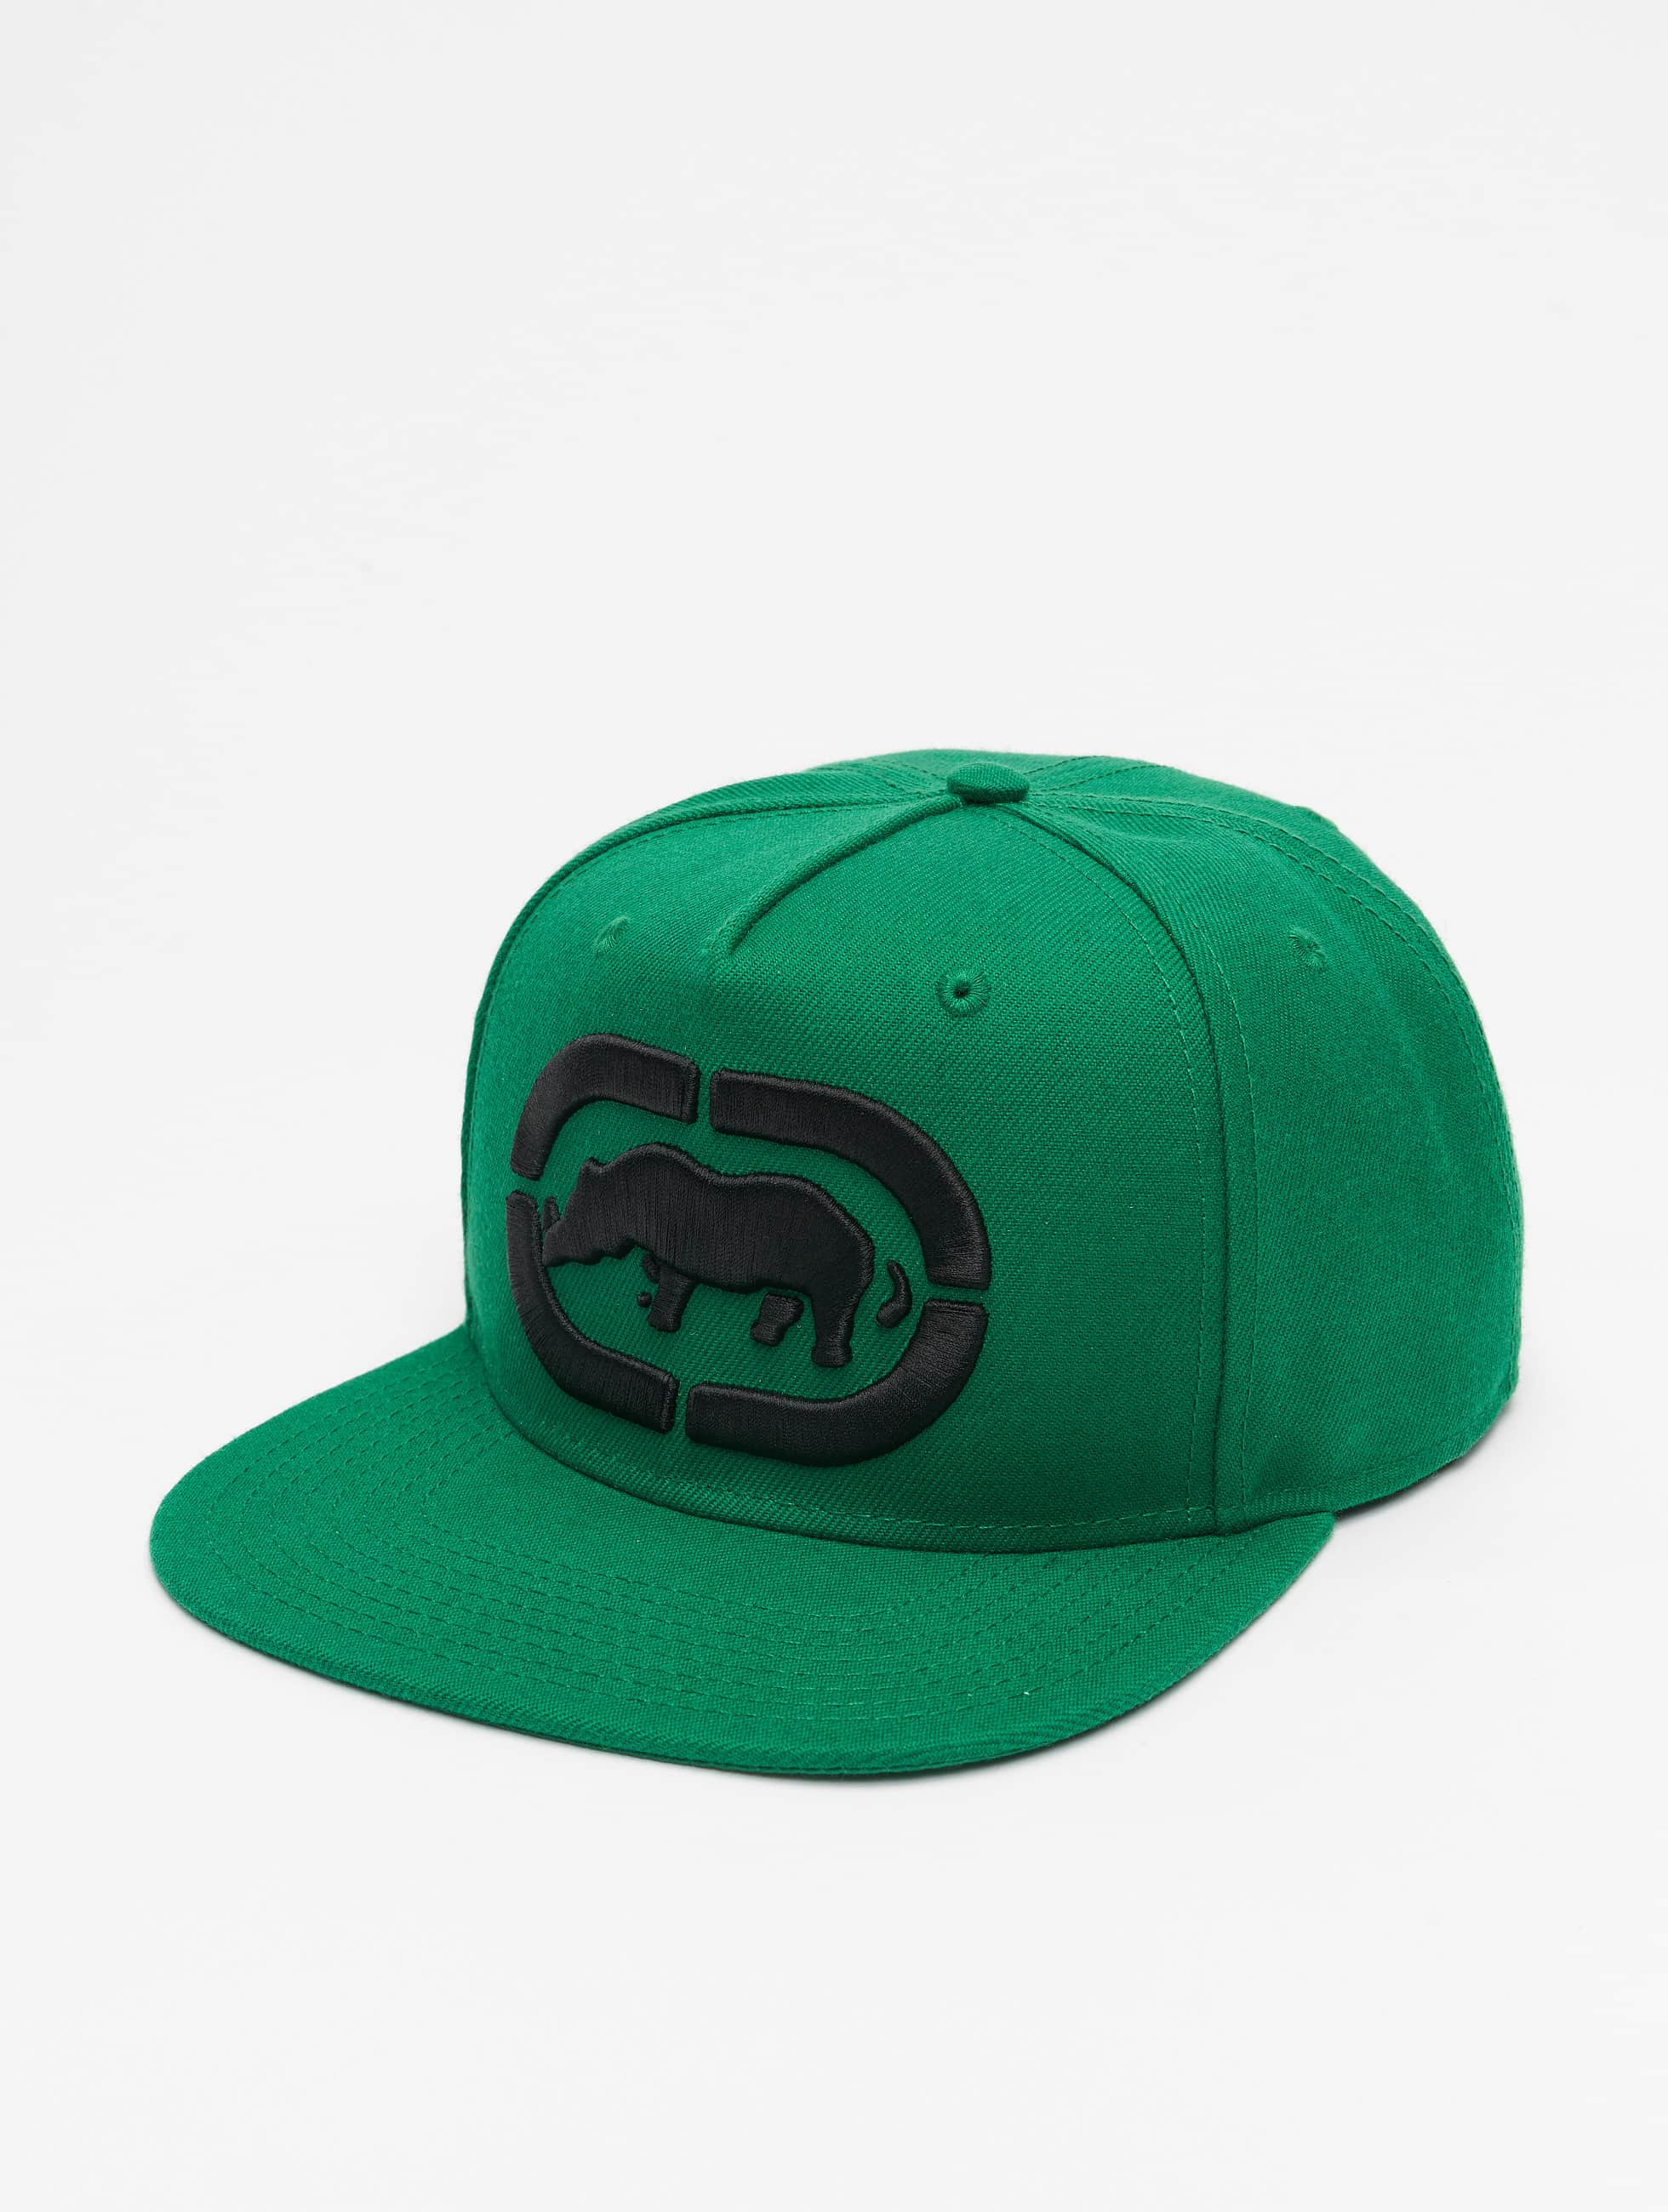 Ecko Unltd. / Snapback Cap Base in green Adjustable